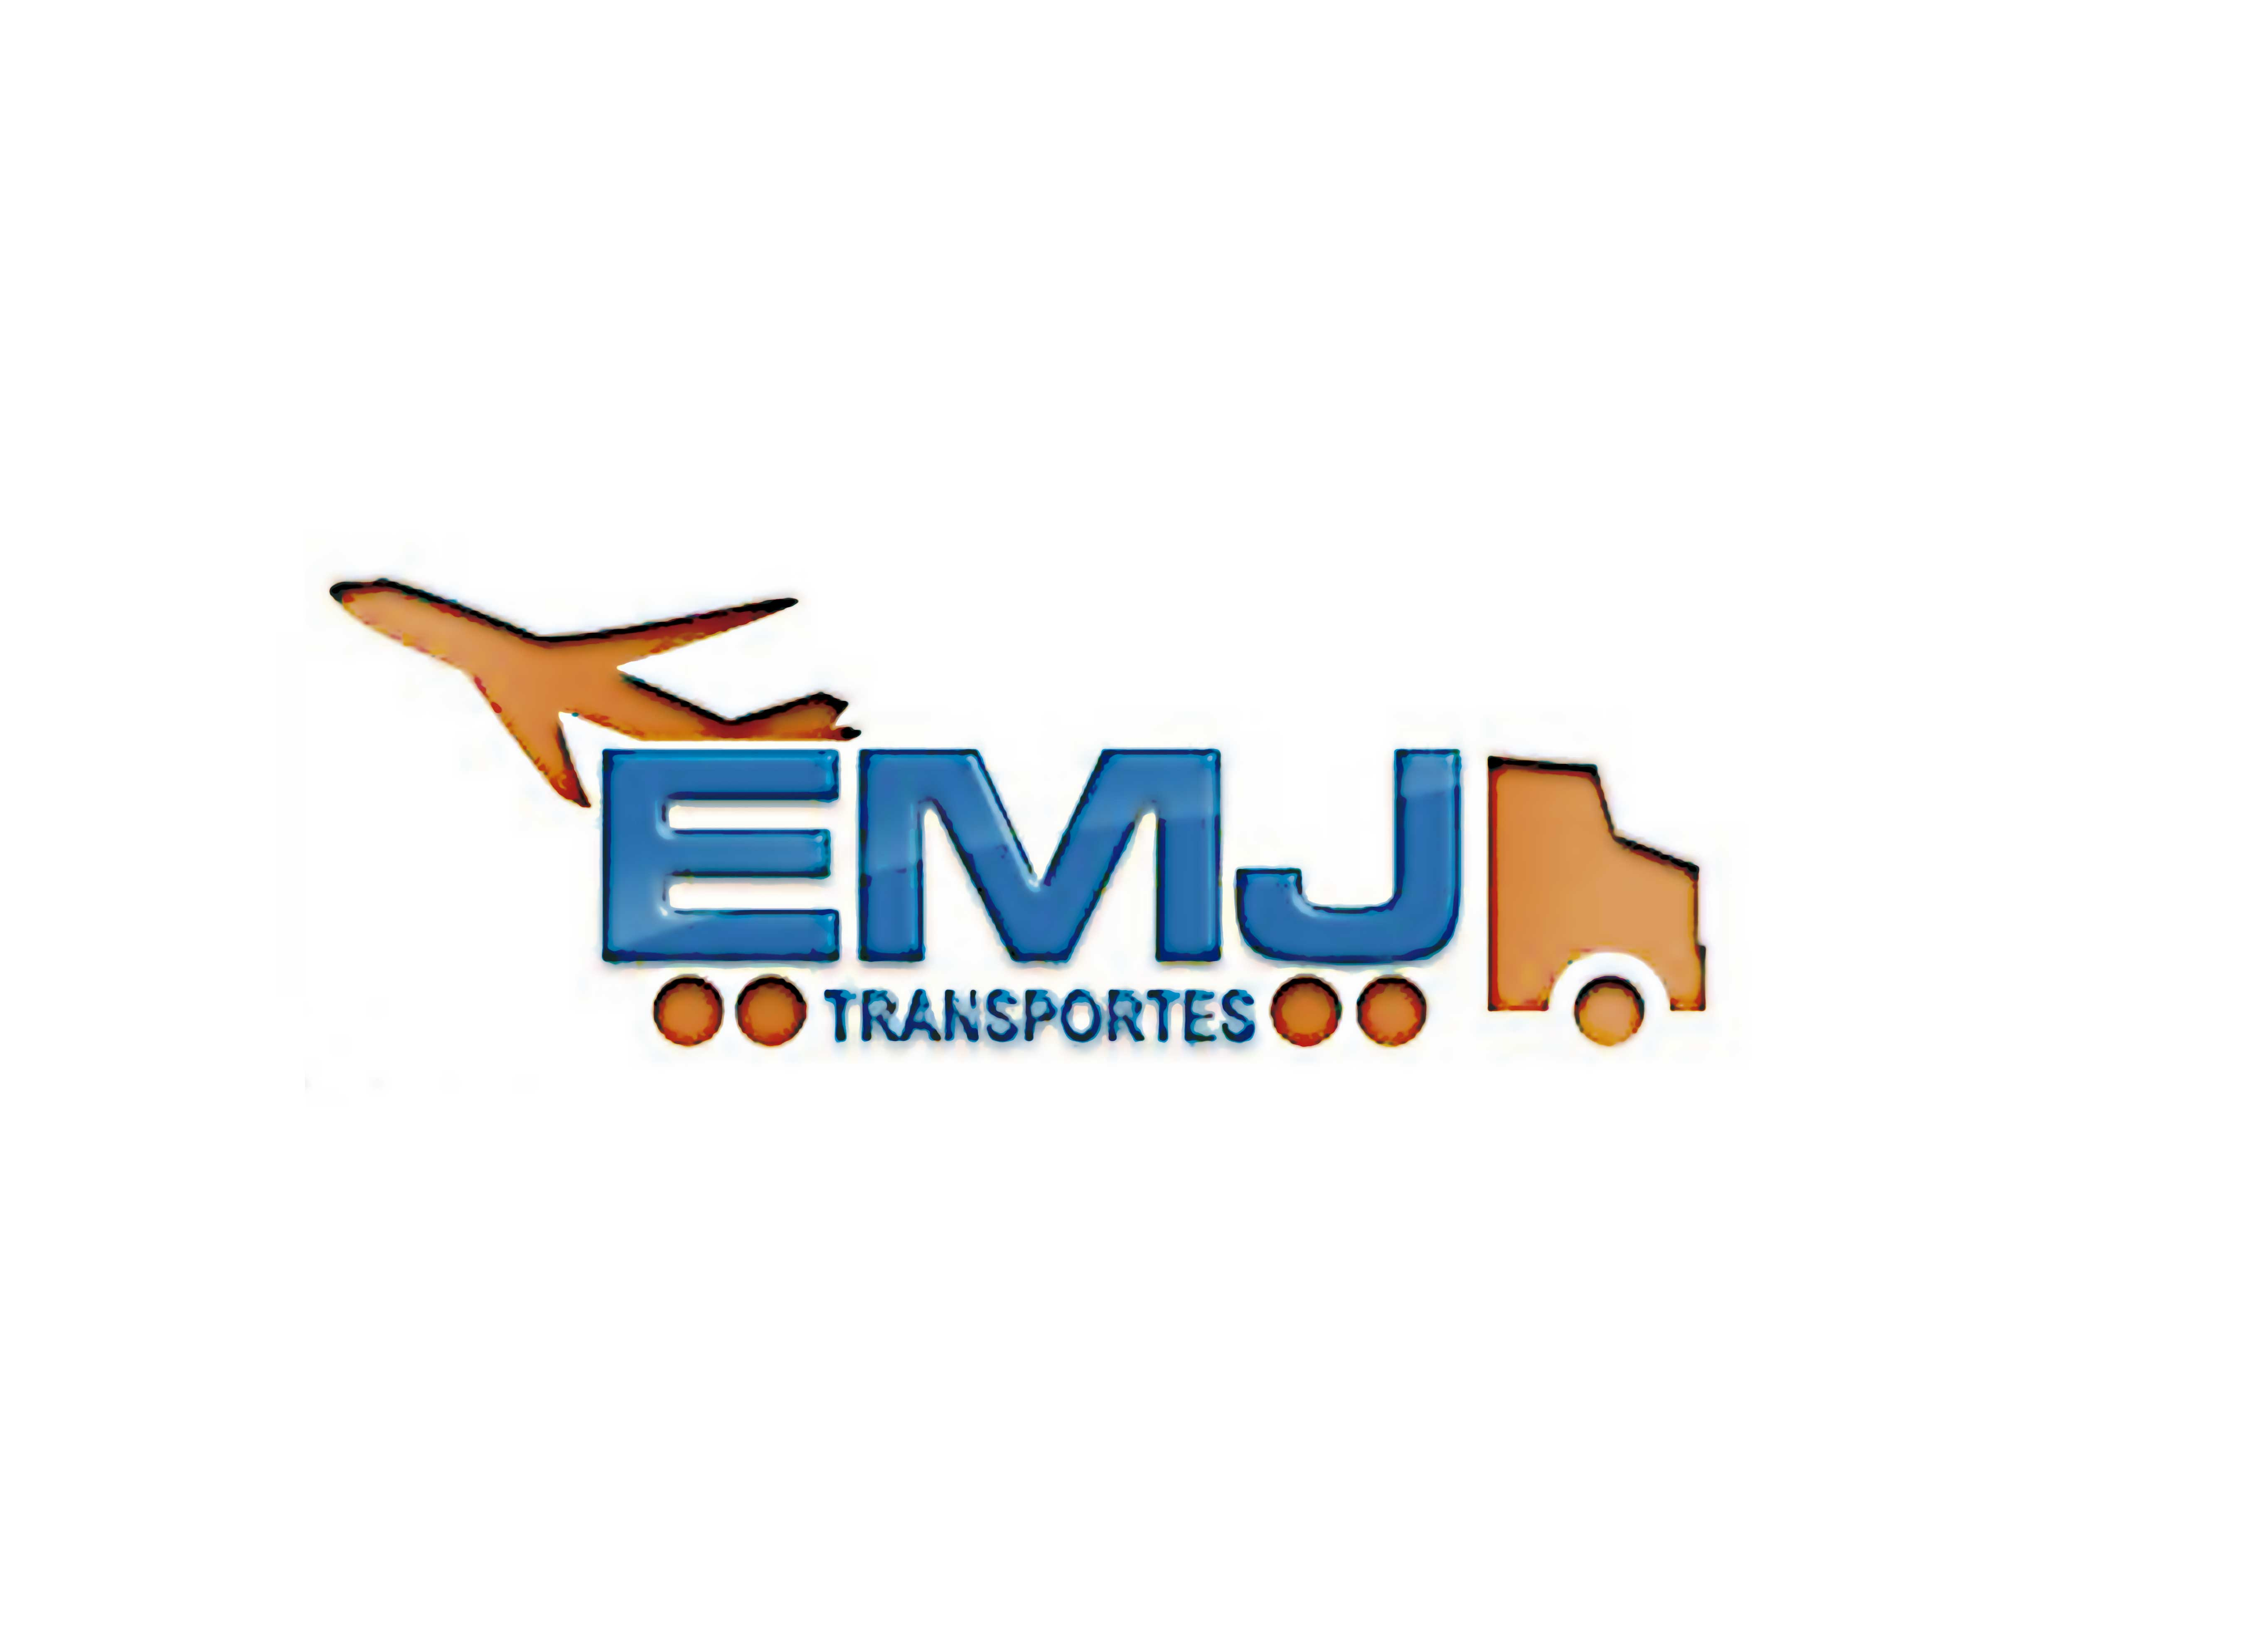 emj-transportes-drc-marketingdigital